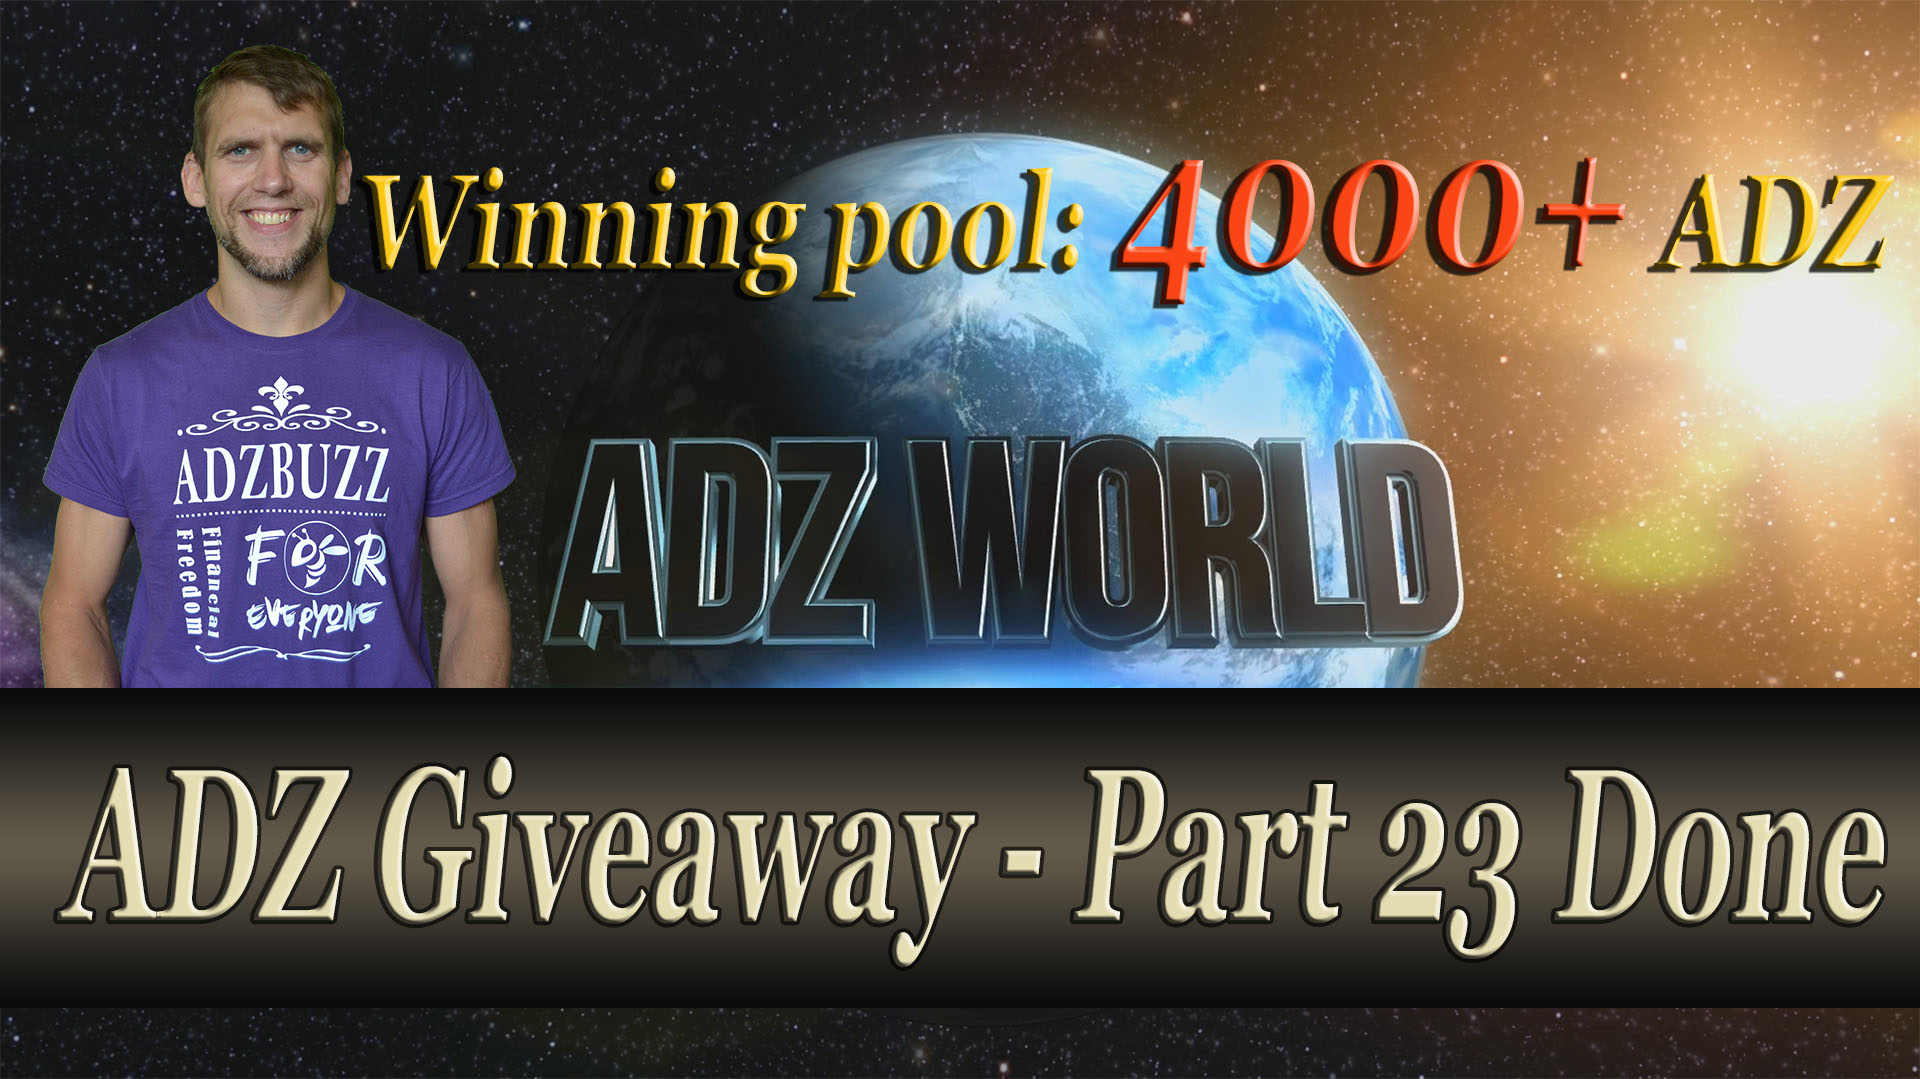 ADZ Giveaway 23 Done. Over 4000 ADZ Was Given Away!